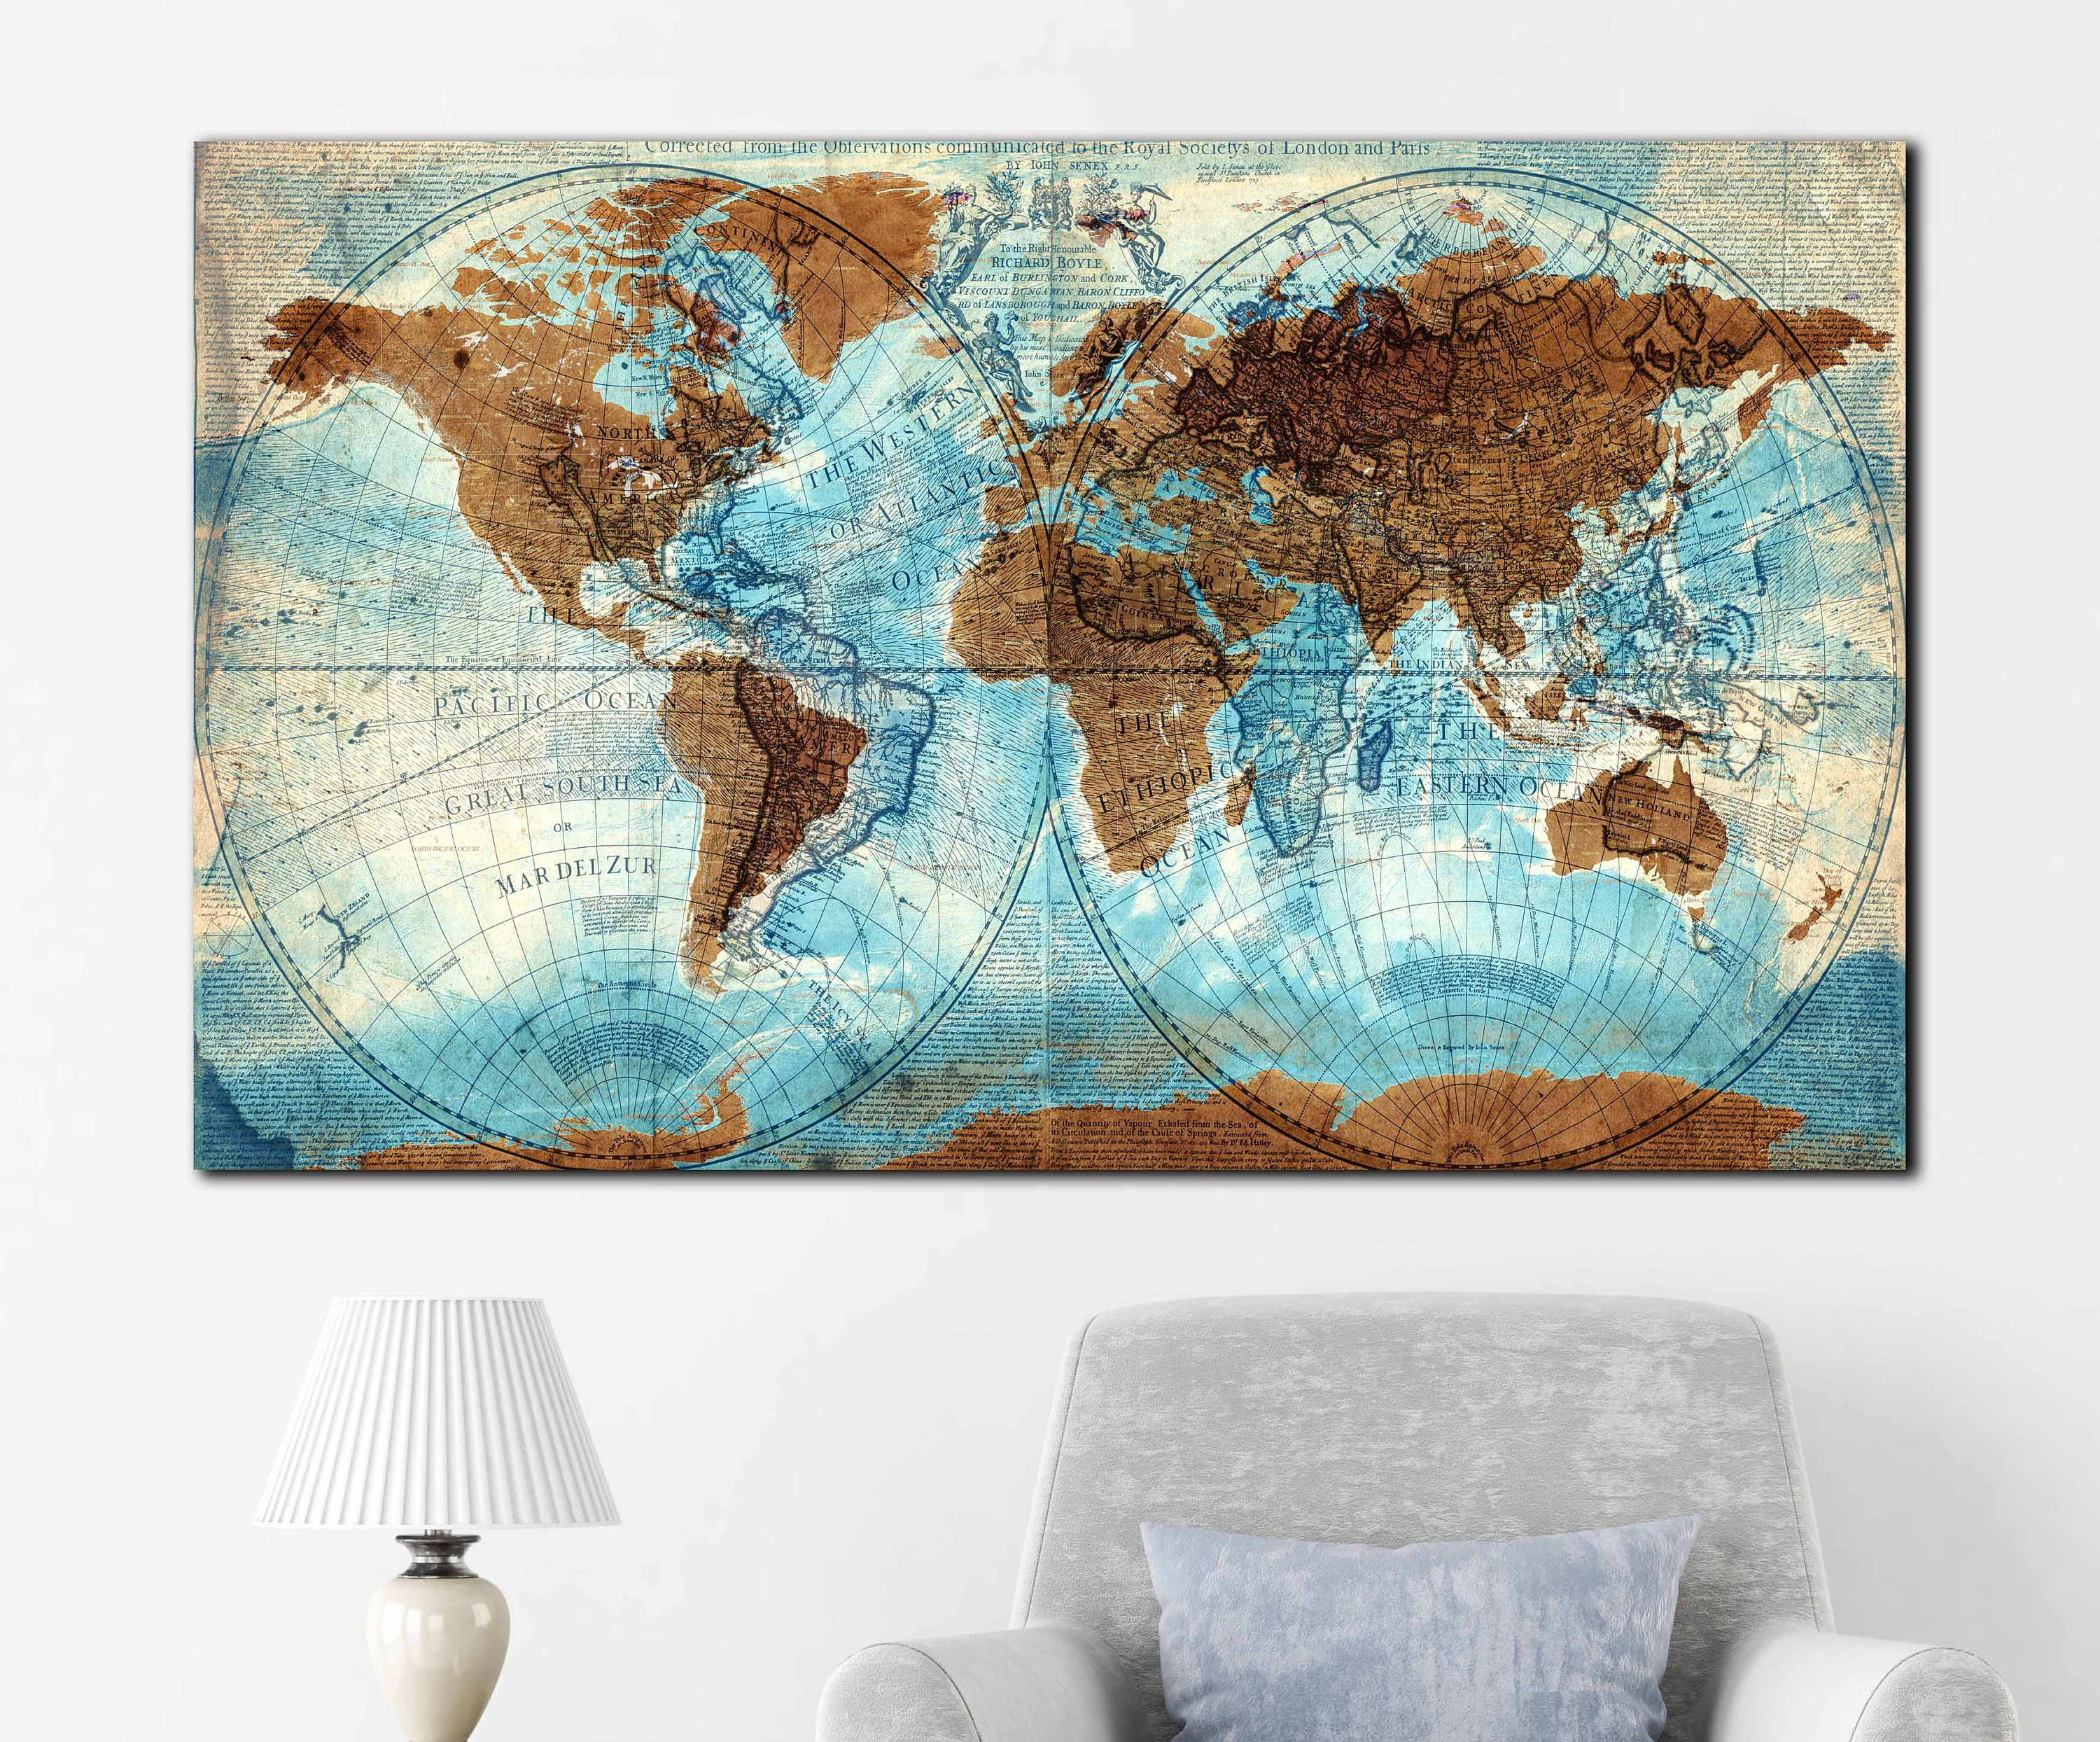 Vintage world map mixed with new world very detailed vintage world vintage world map mixed with new world very detailed vintage world map world map wall art world map canvas world map art world map print gumiabroncs Gallery